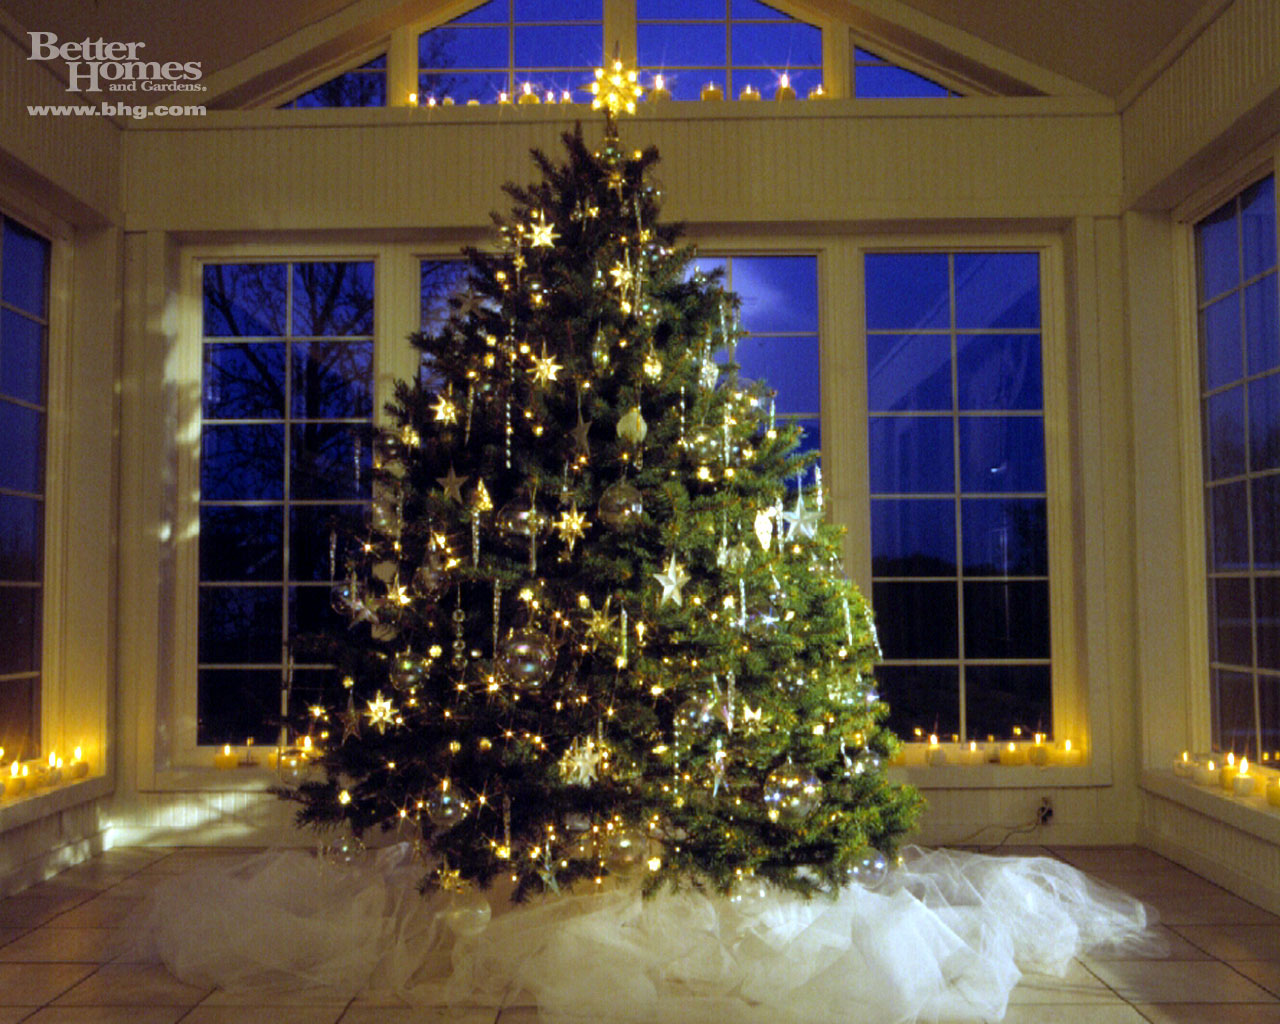 Funny wallpapers hd wallpapers desktop wallpapers House beautiful christmas trees